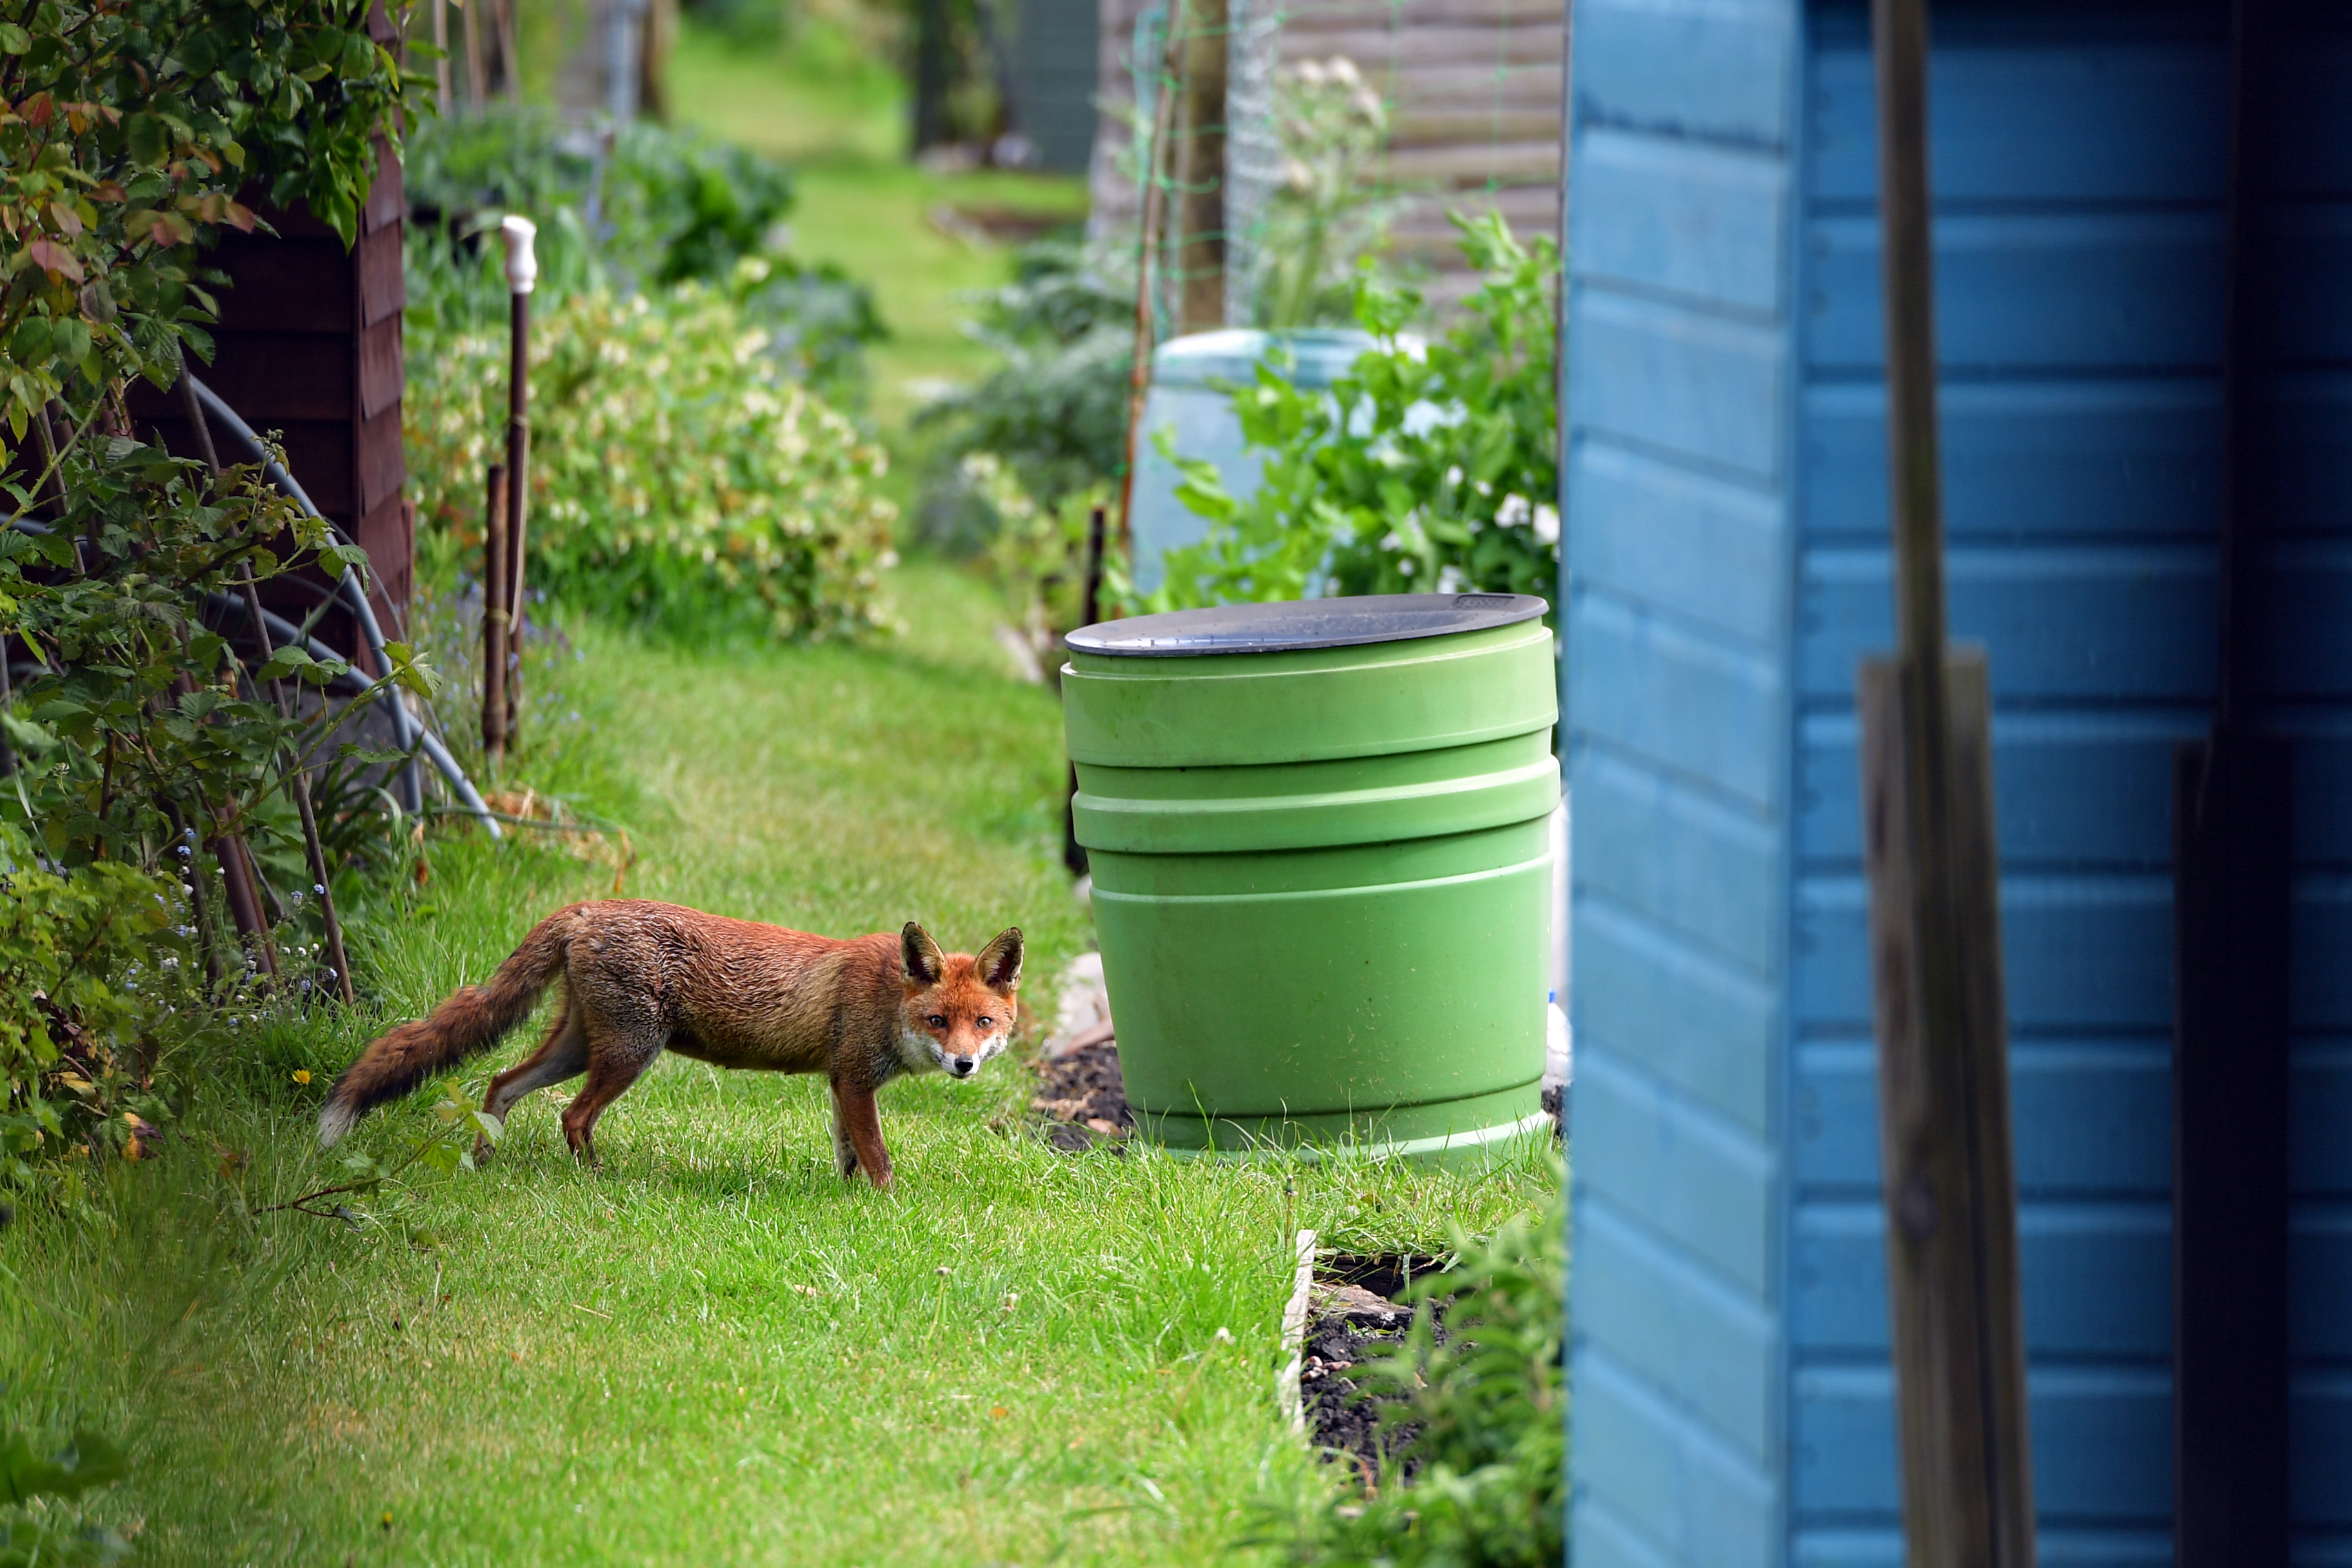 A fox enjoys an allotment to himself during an afternoon in Earlsfield as the UK continues in lockdown to help curb the spread of the coronavirus.